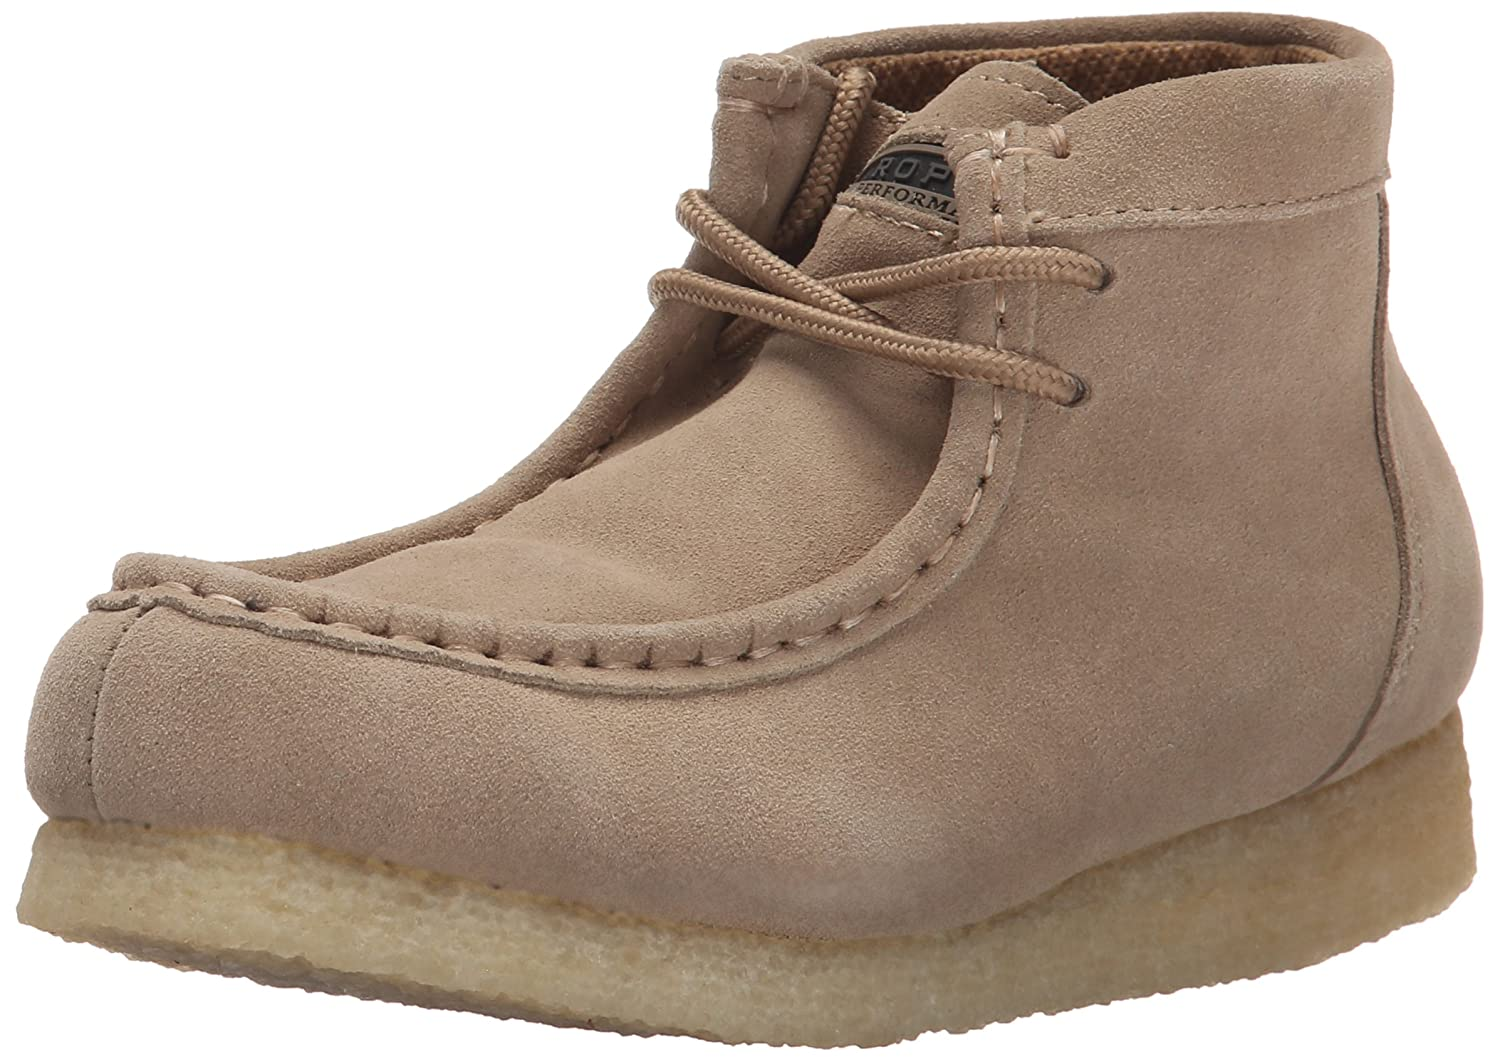 Roper Women's Performance Desert Sticker Gum Sole B003HC9EHS 10 B(M) US|Tan